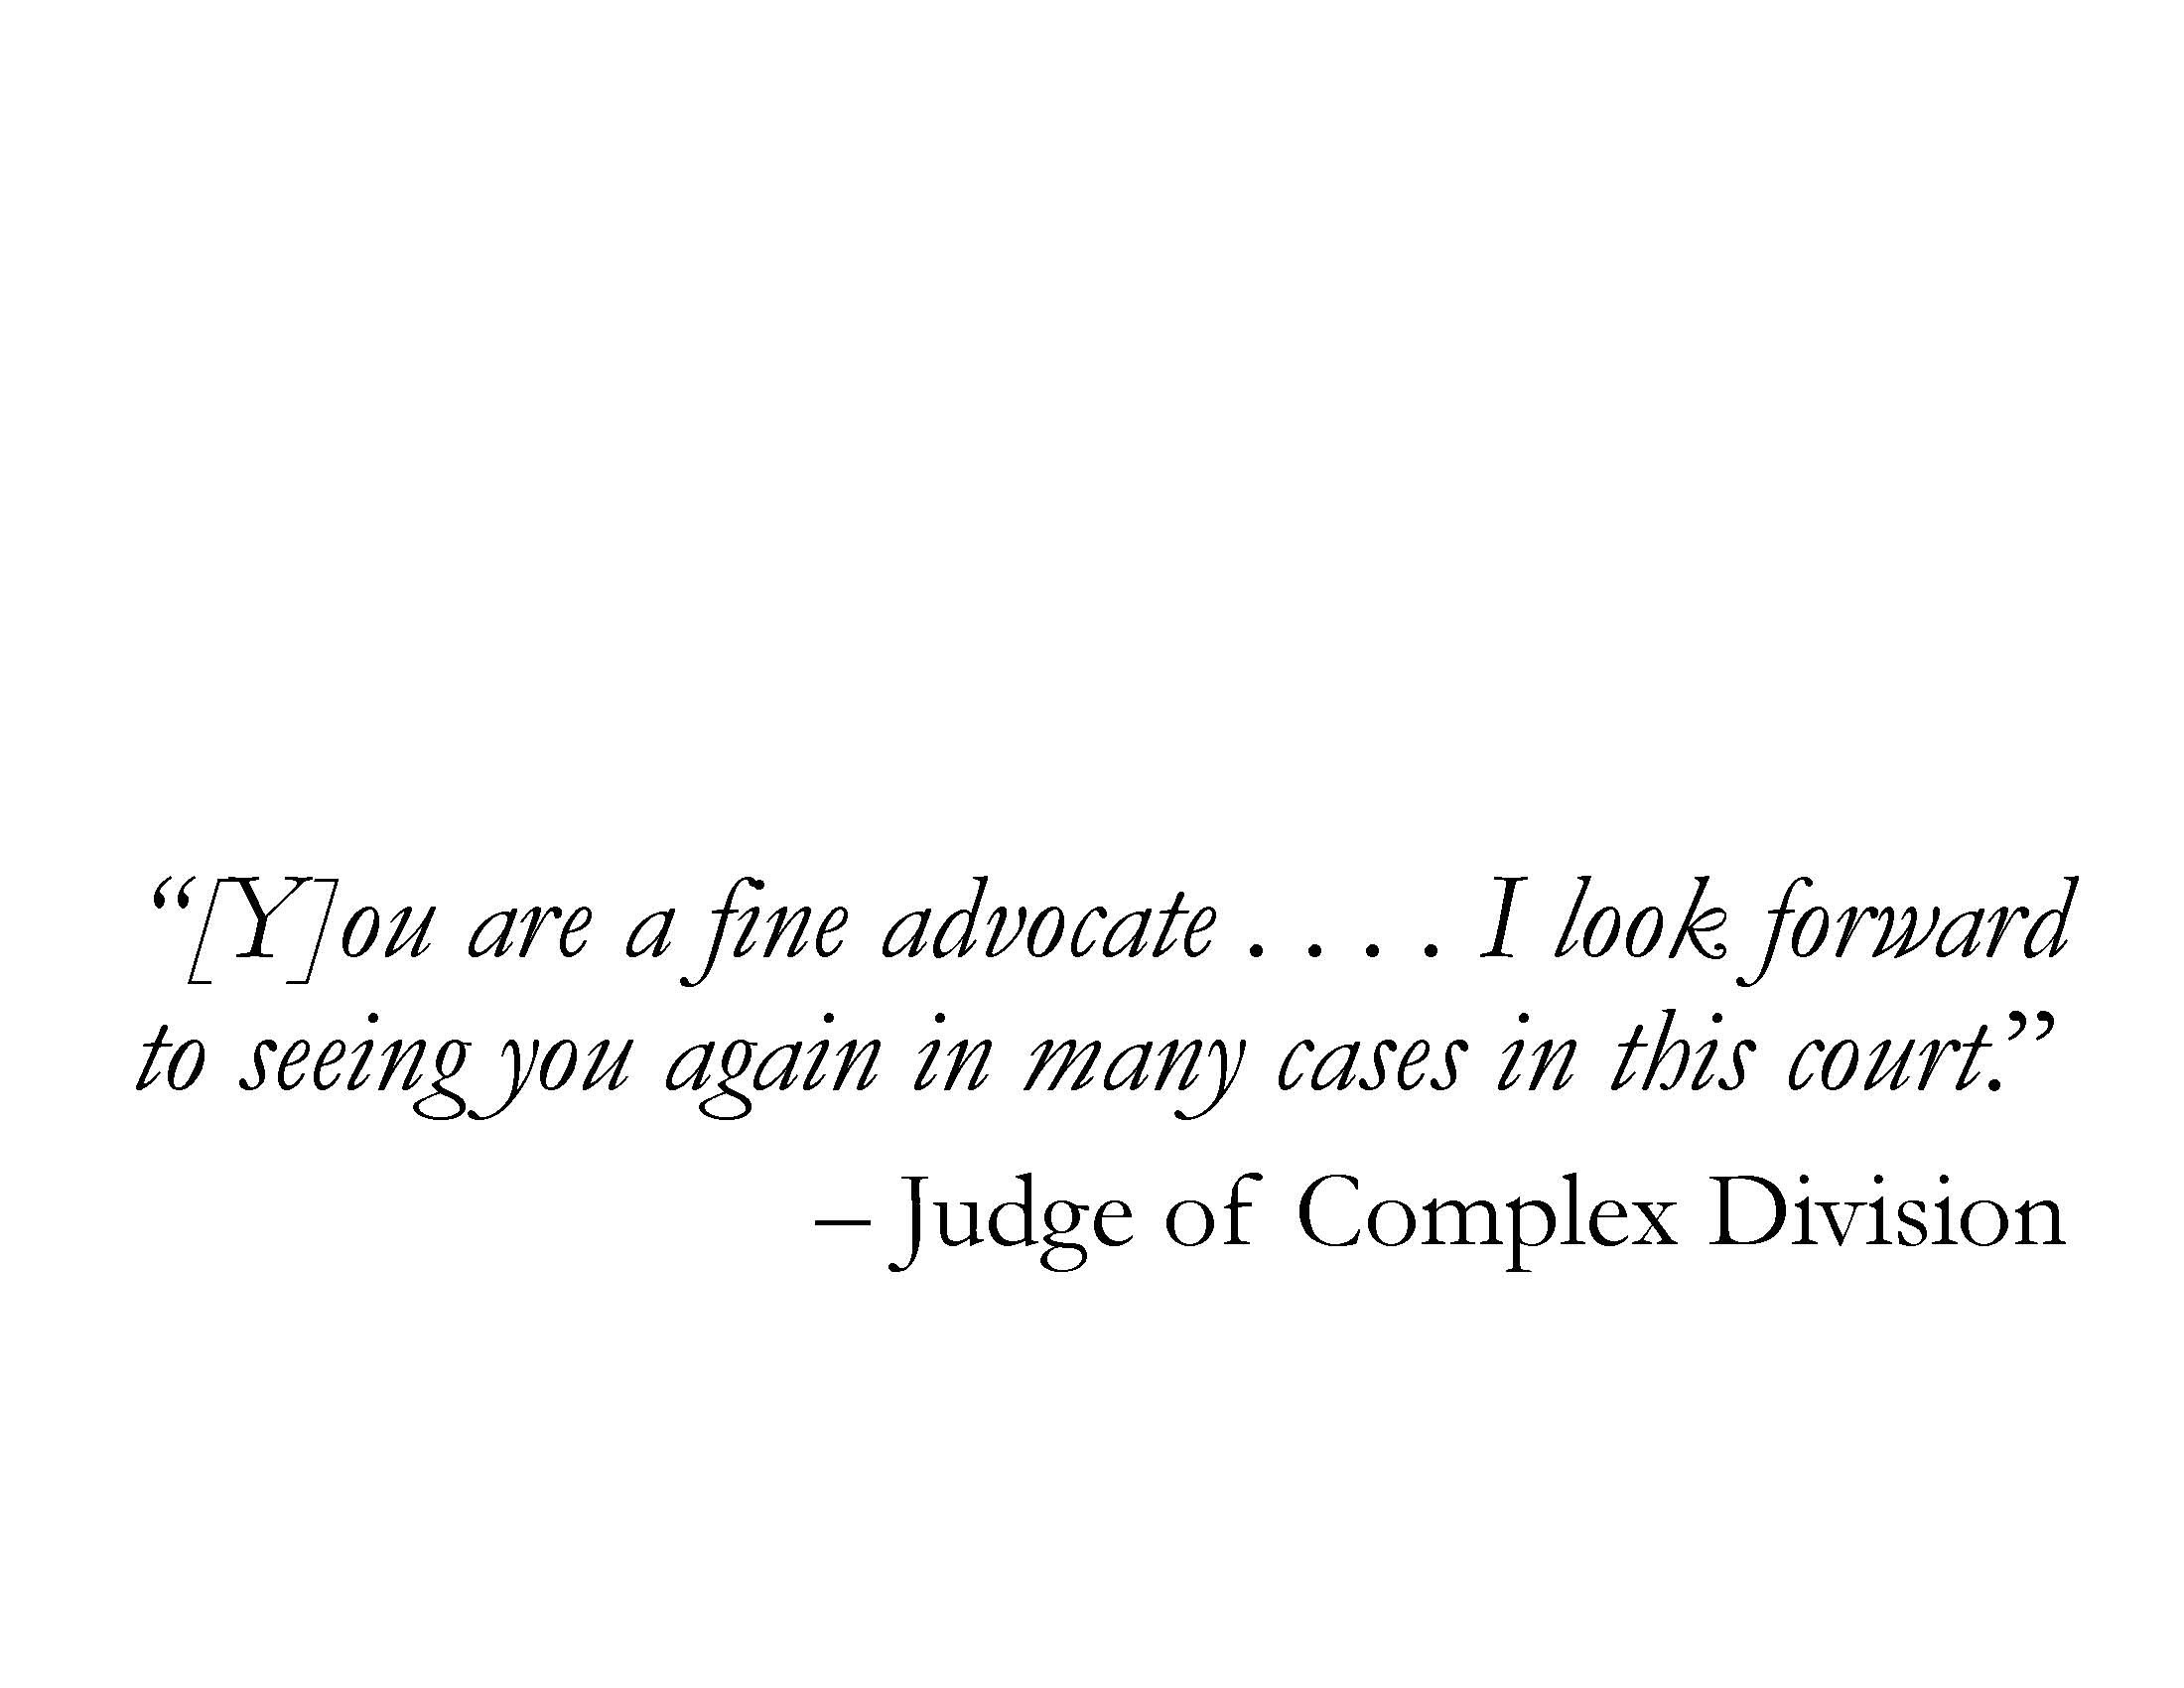 IN THE WORDS OF THE COURT: